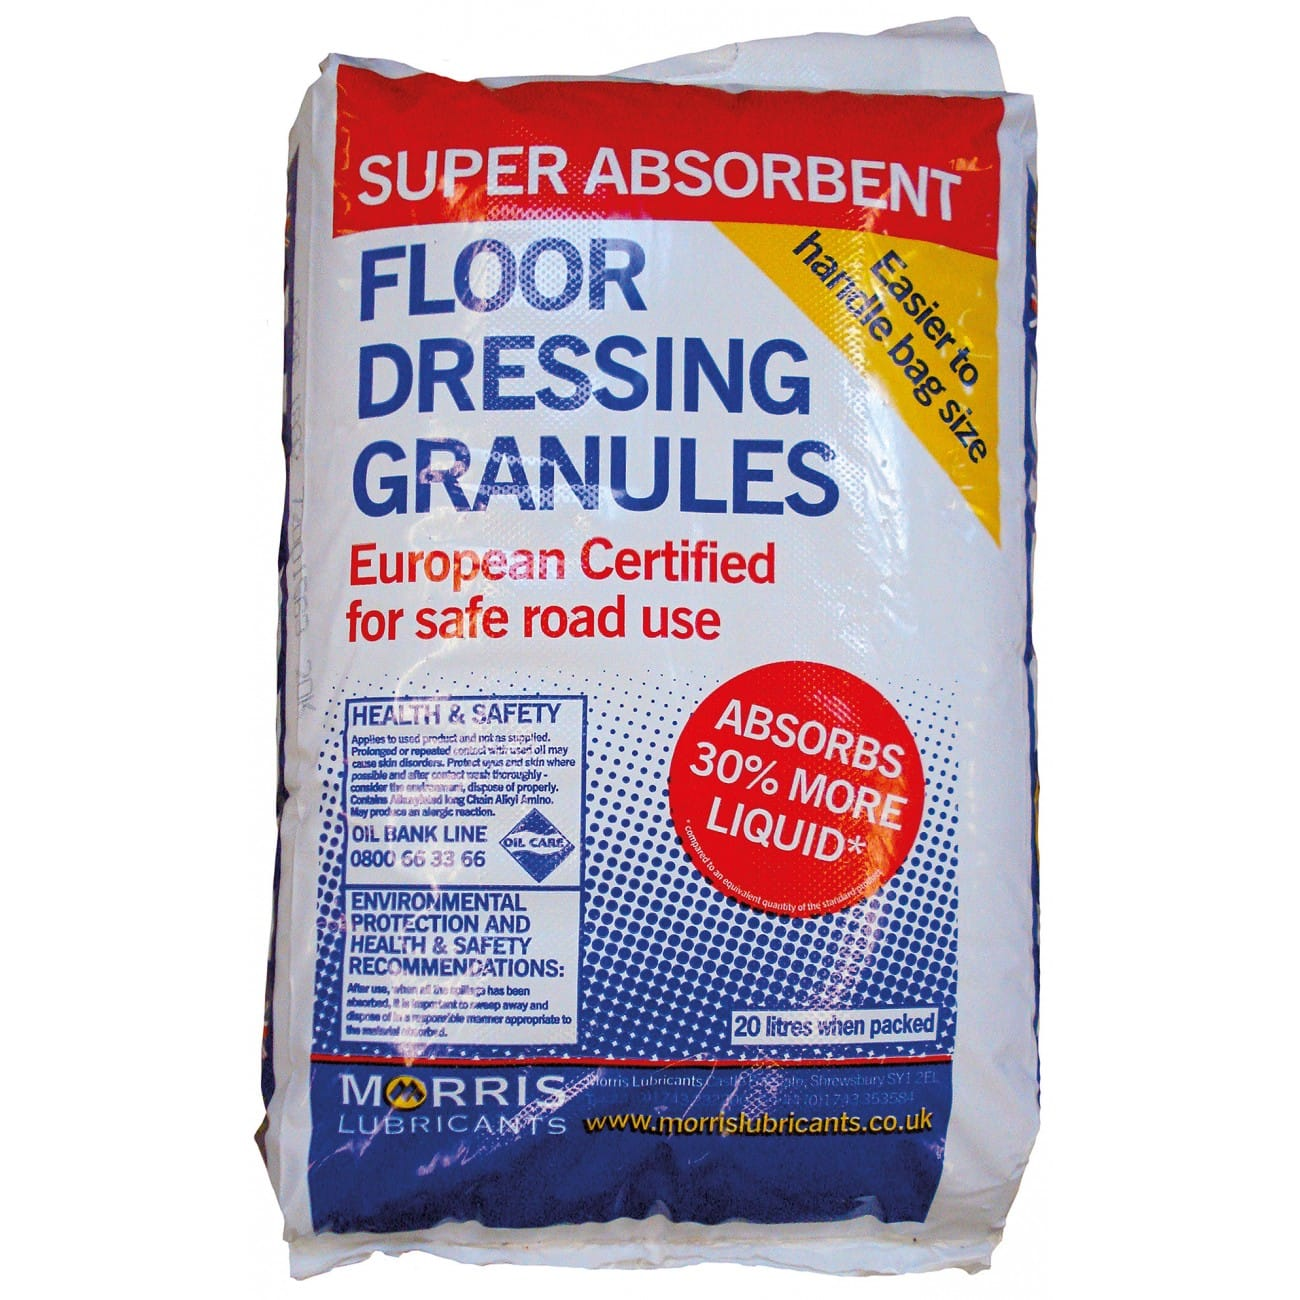 Super Absorbent Floor Dressing